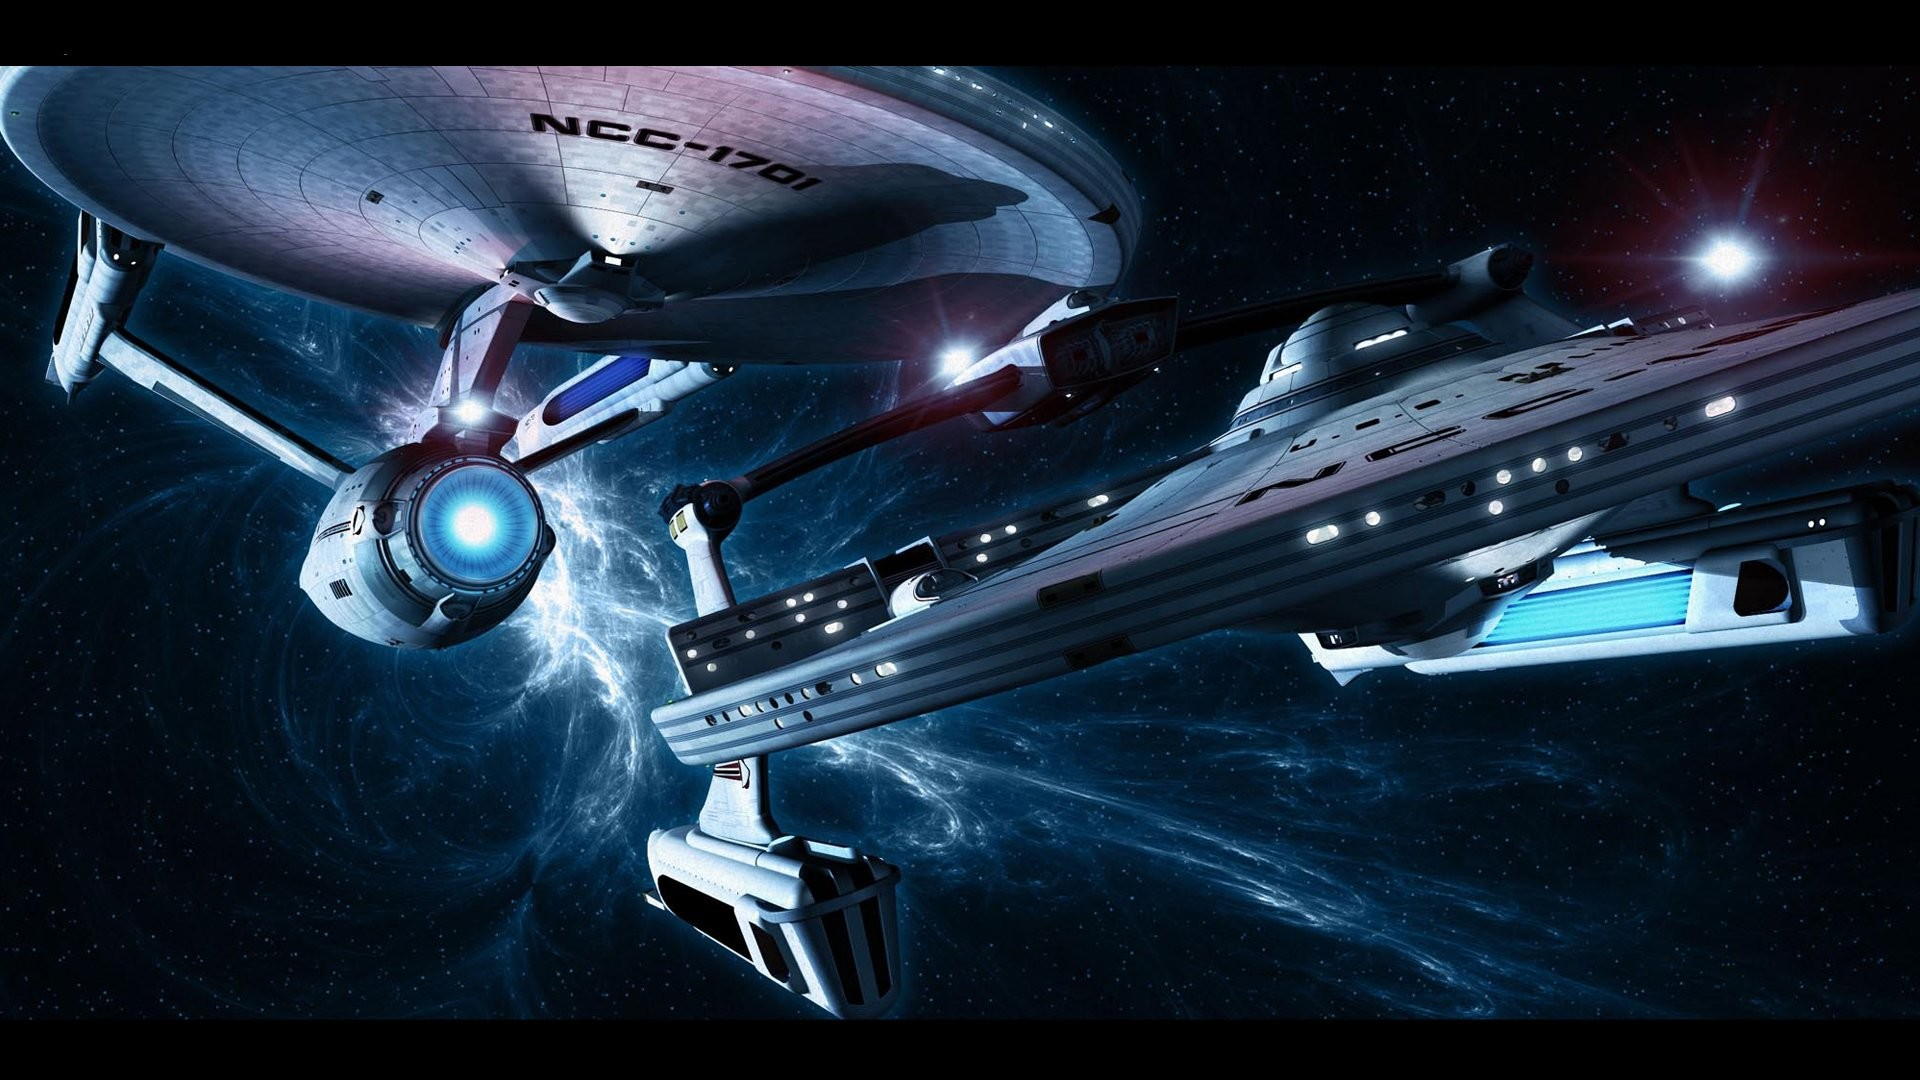 1920x1080 HD Wallpaper | Background Image ID:76470.  Sci Fi Star Trek